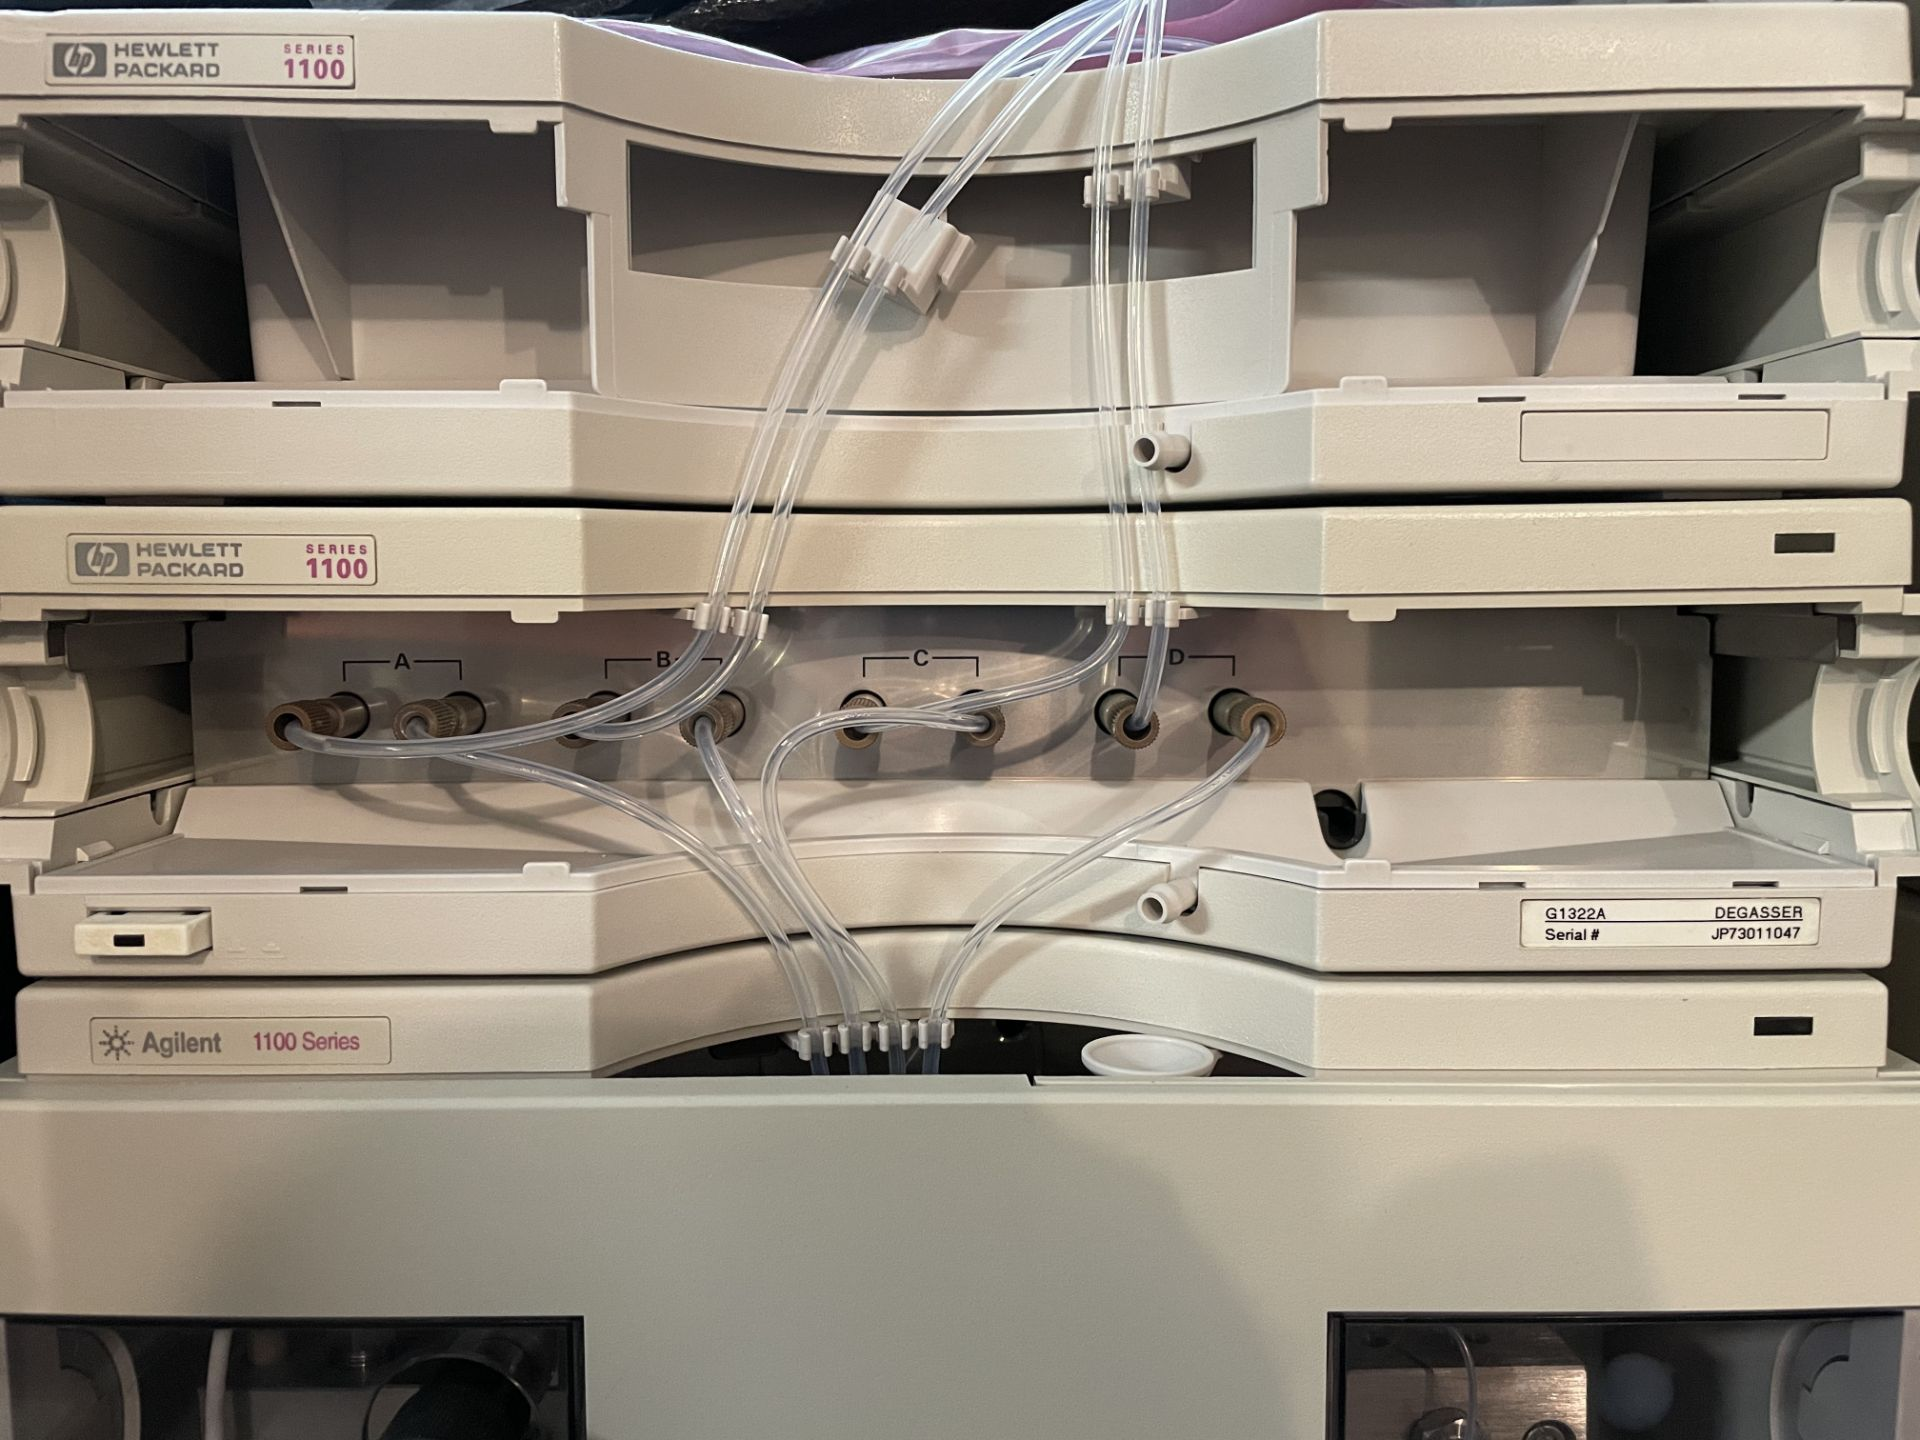 Used Agilent 1100 HPLC. Model 1100. Fully complete & functional cannabinoid potency testing system. - Image 3 of 22